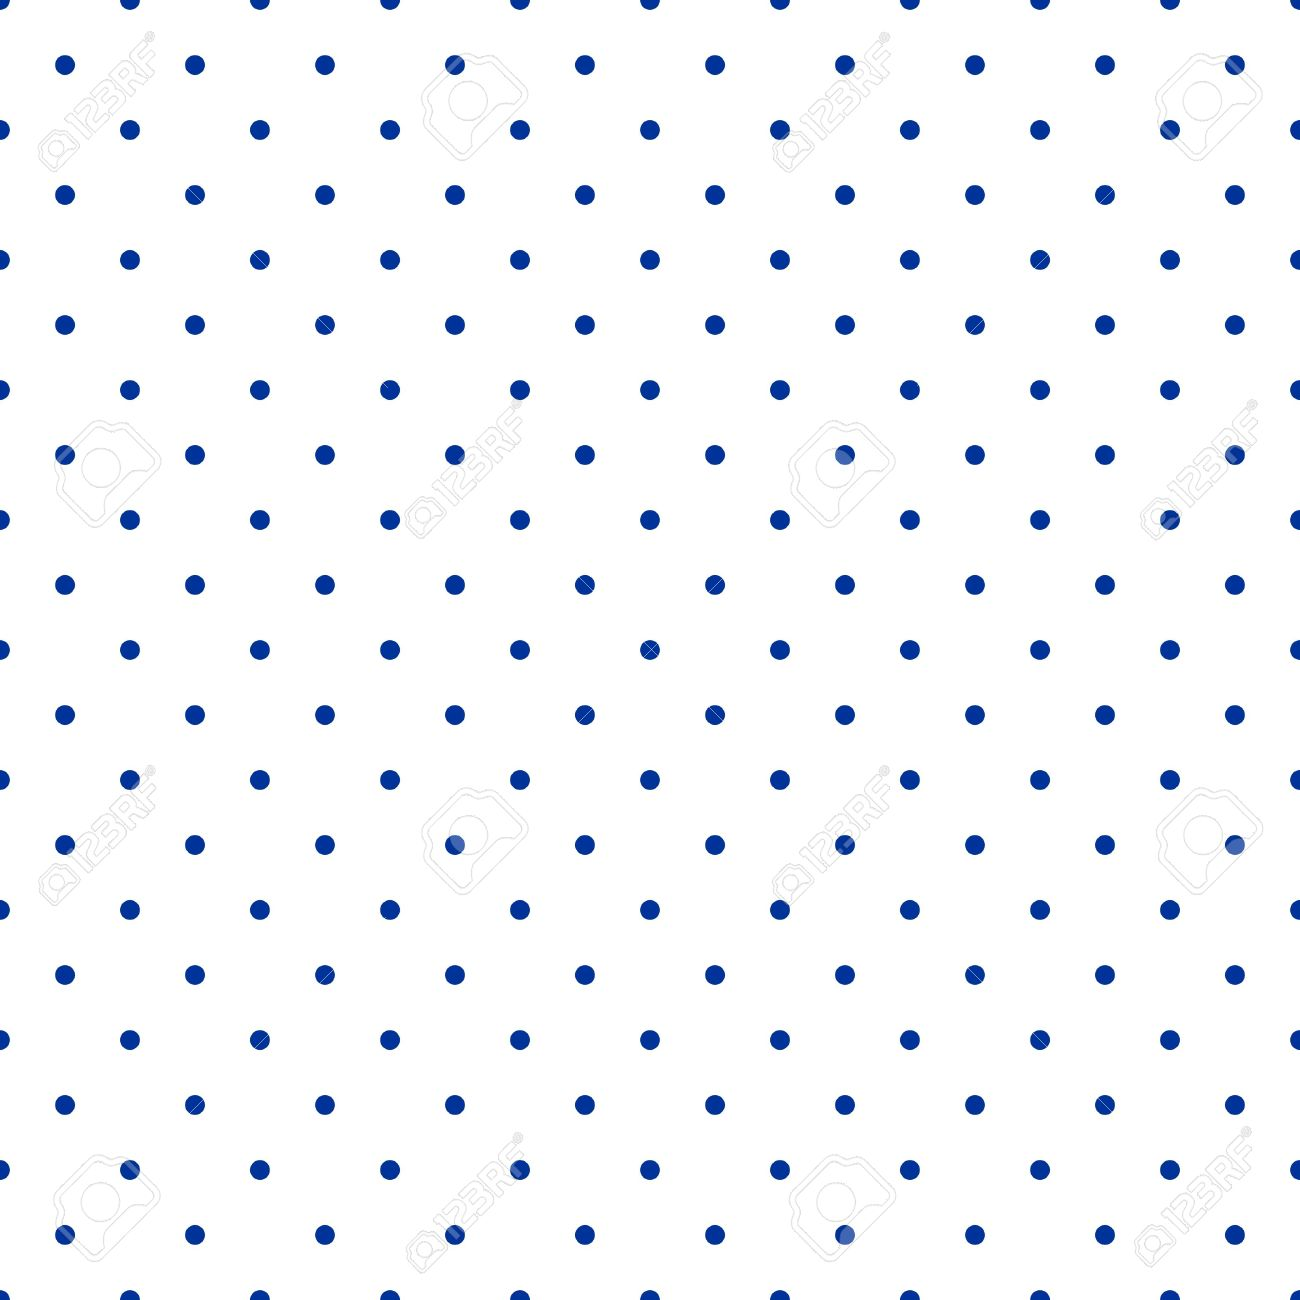 33482527-seamless-vector-pattern-with-small-tile-sailor-navy-blue-polka-dots-on-white-background.jpg